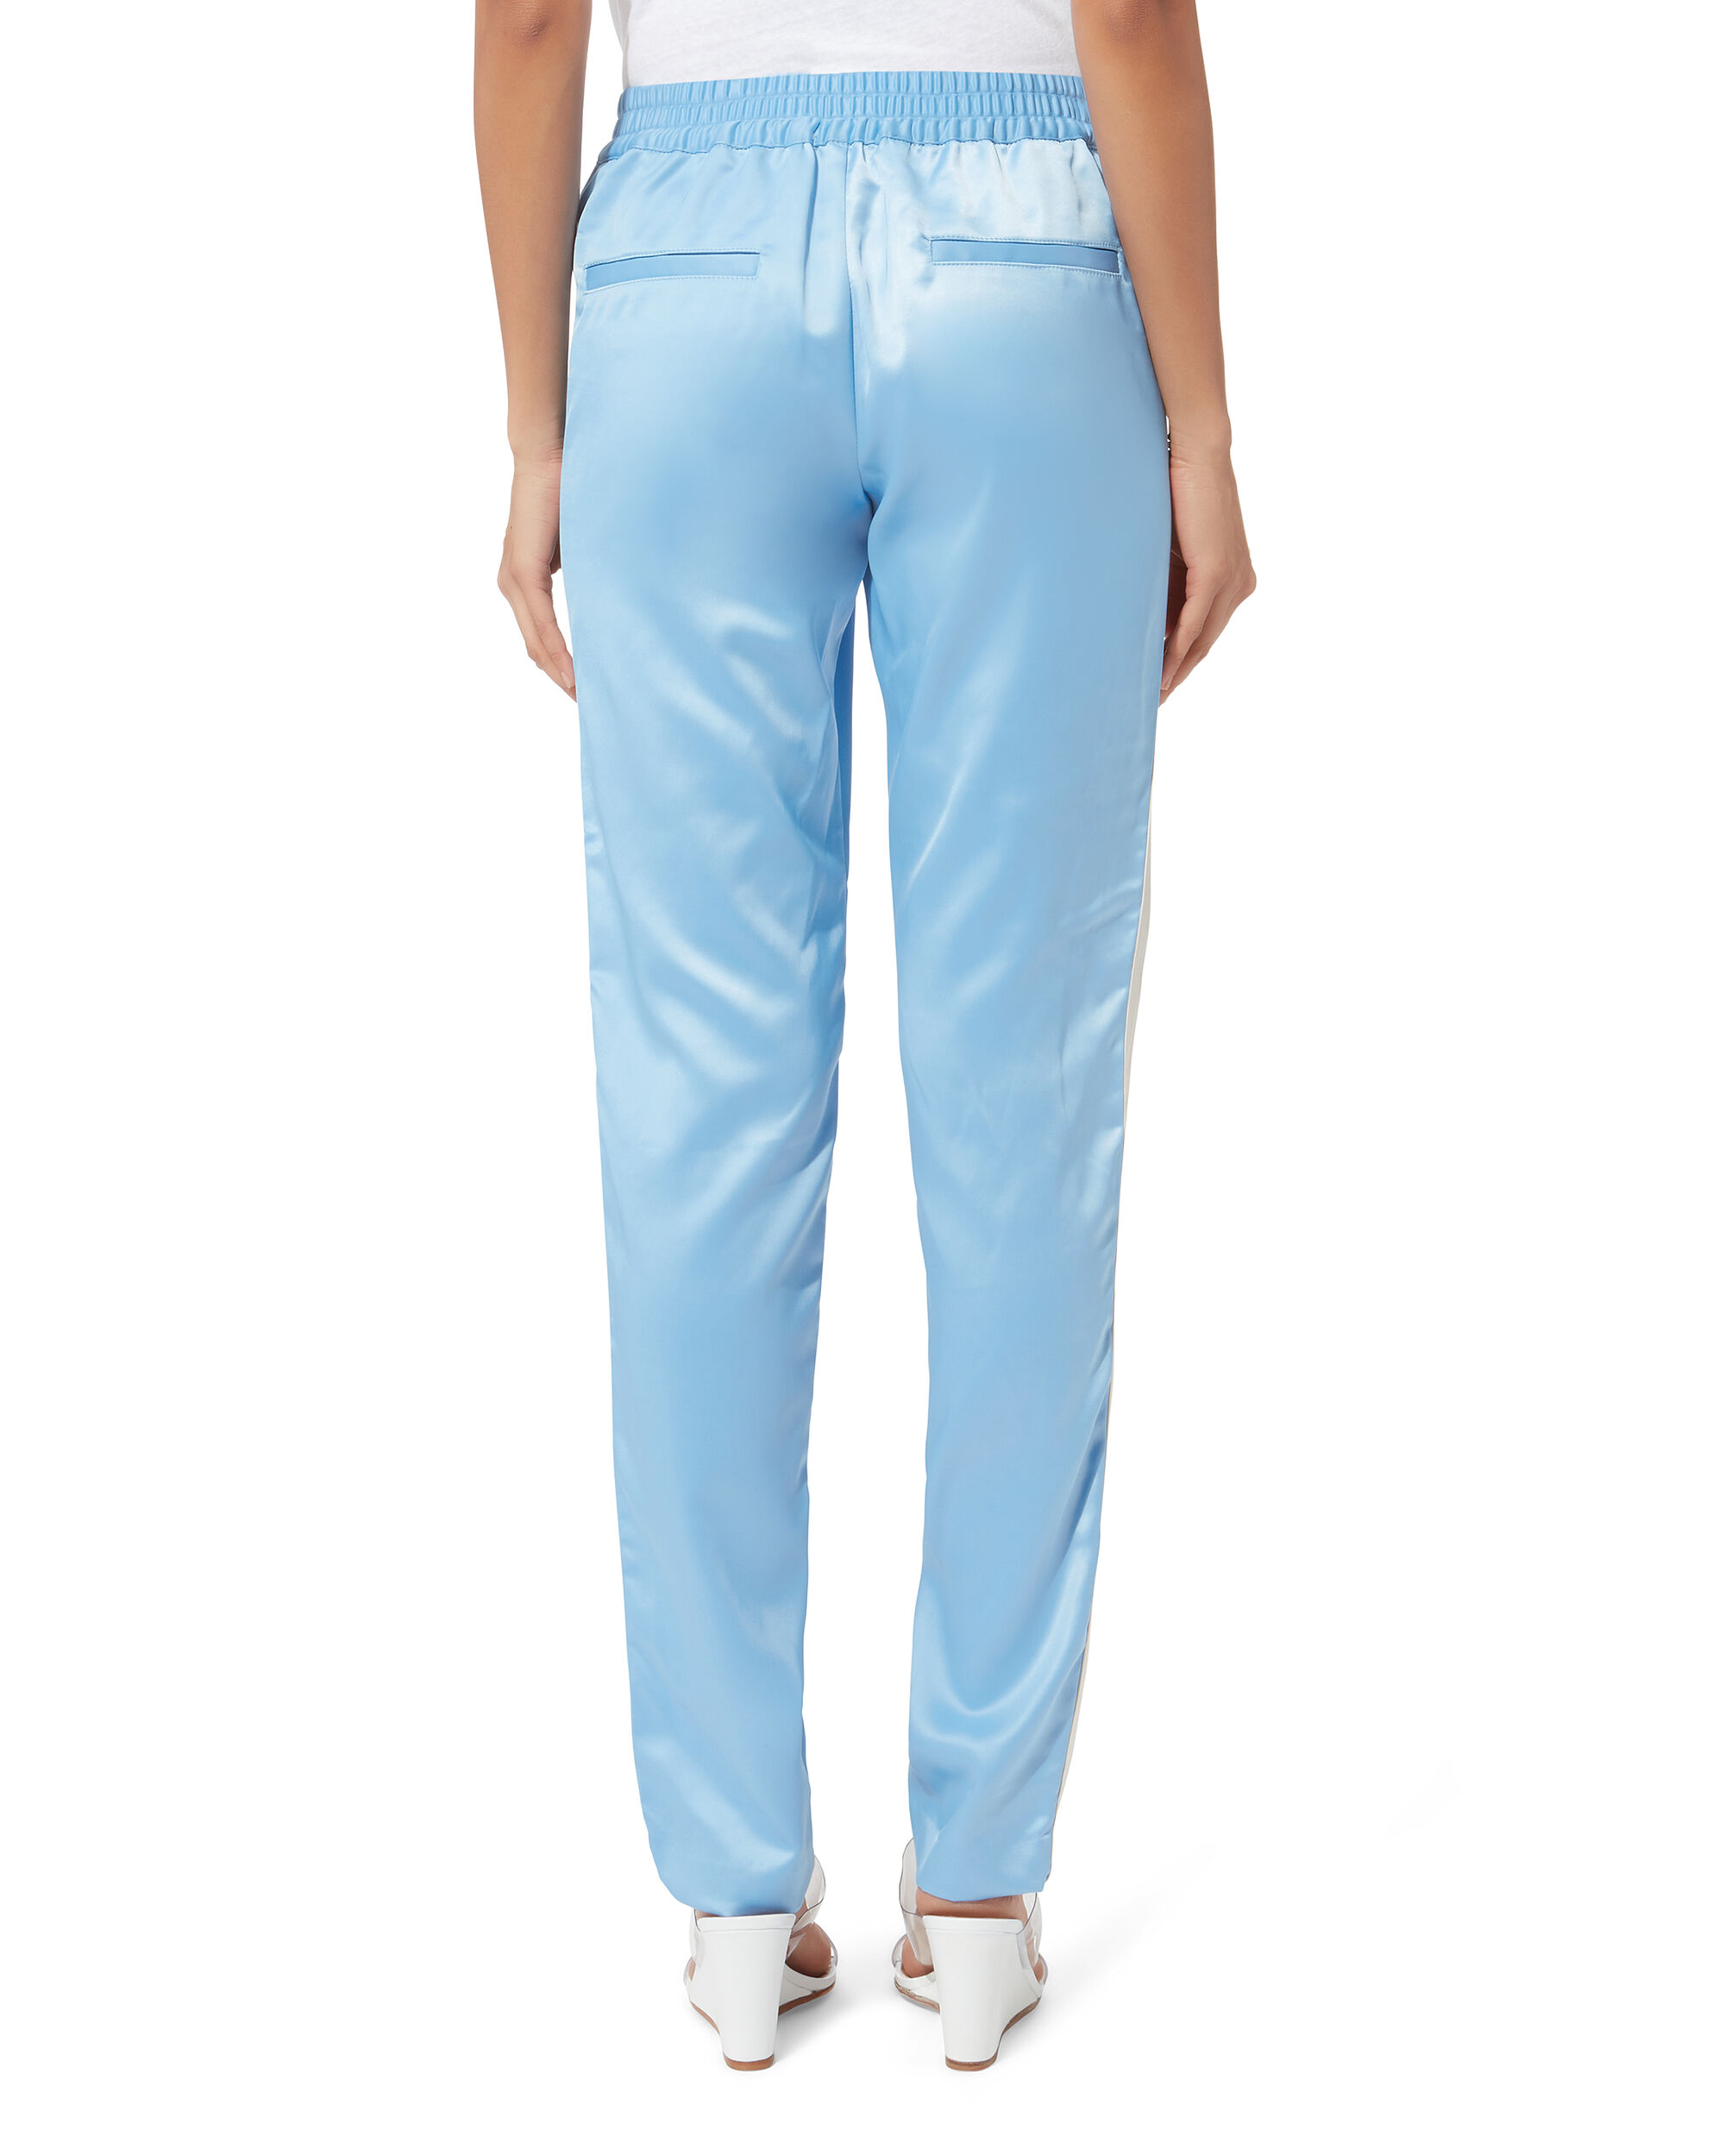 Track Striped Silk Pants, BLUE, hi-res